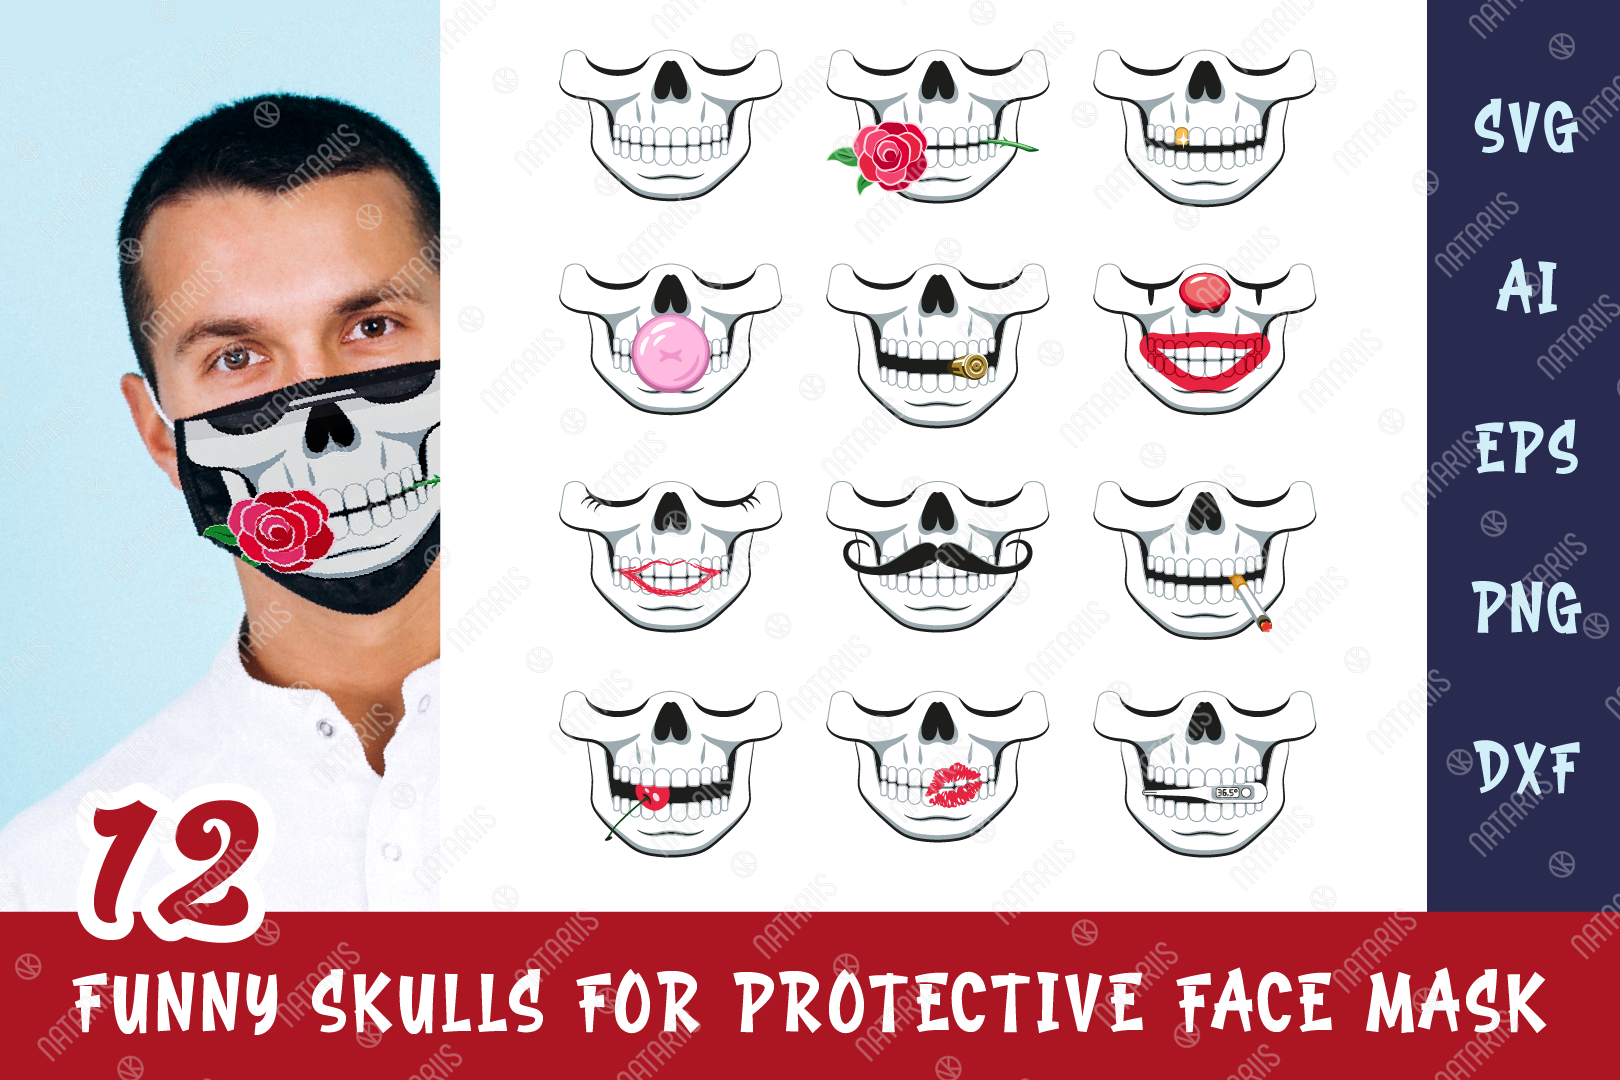 Download Free 12 Funny Skulls For Protective Face Mask Graphic By Natariis SVG Cut Files